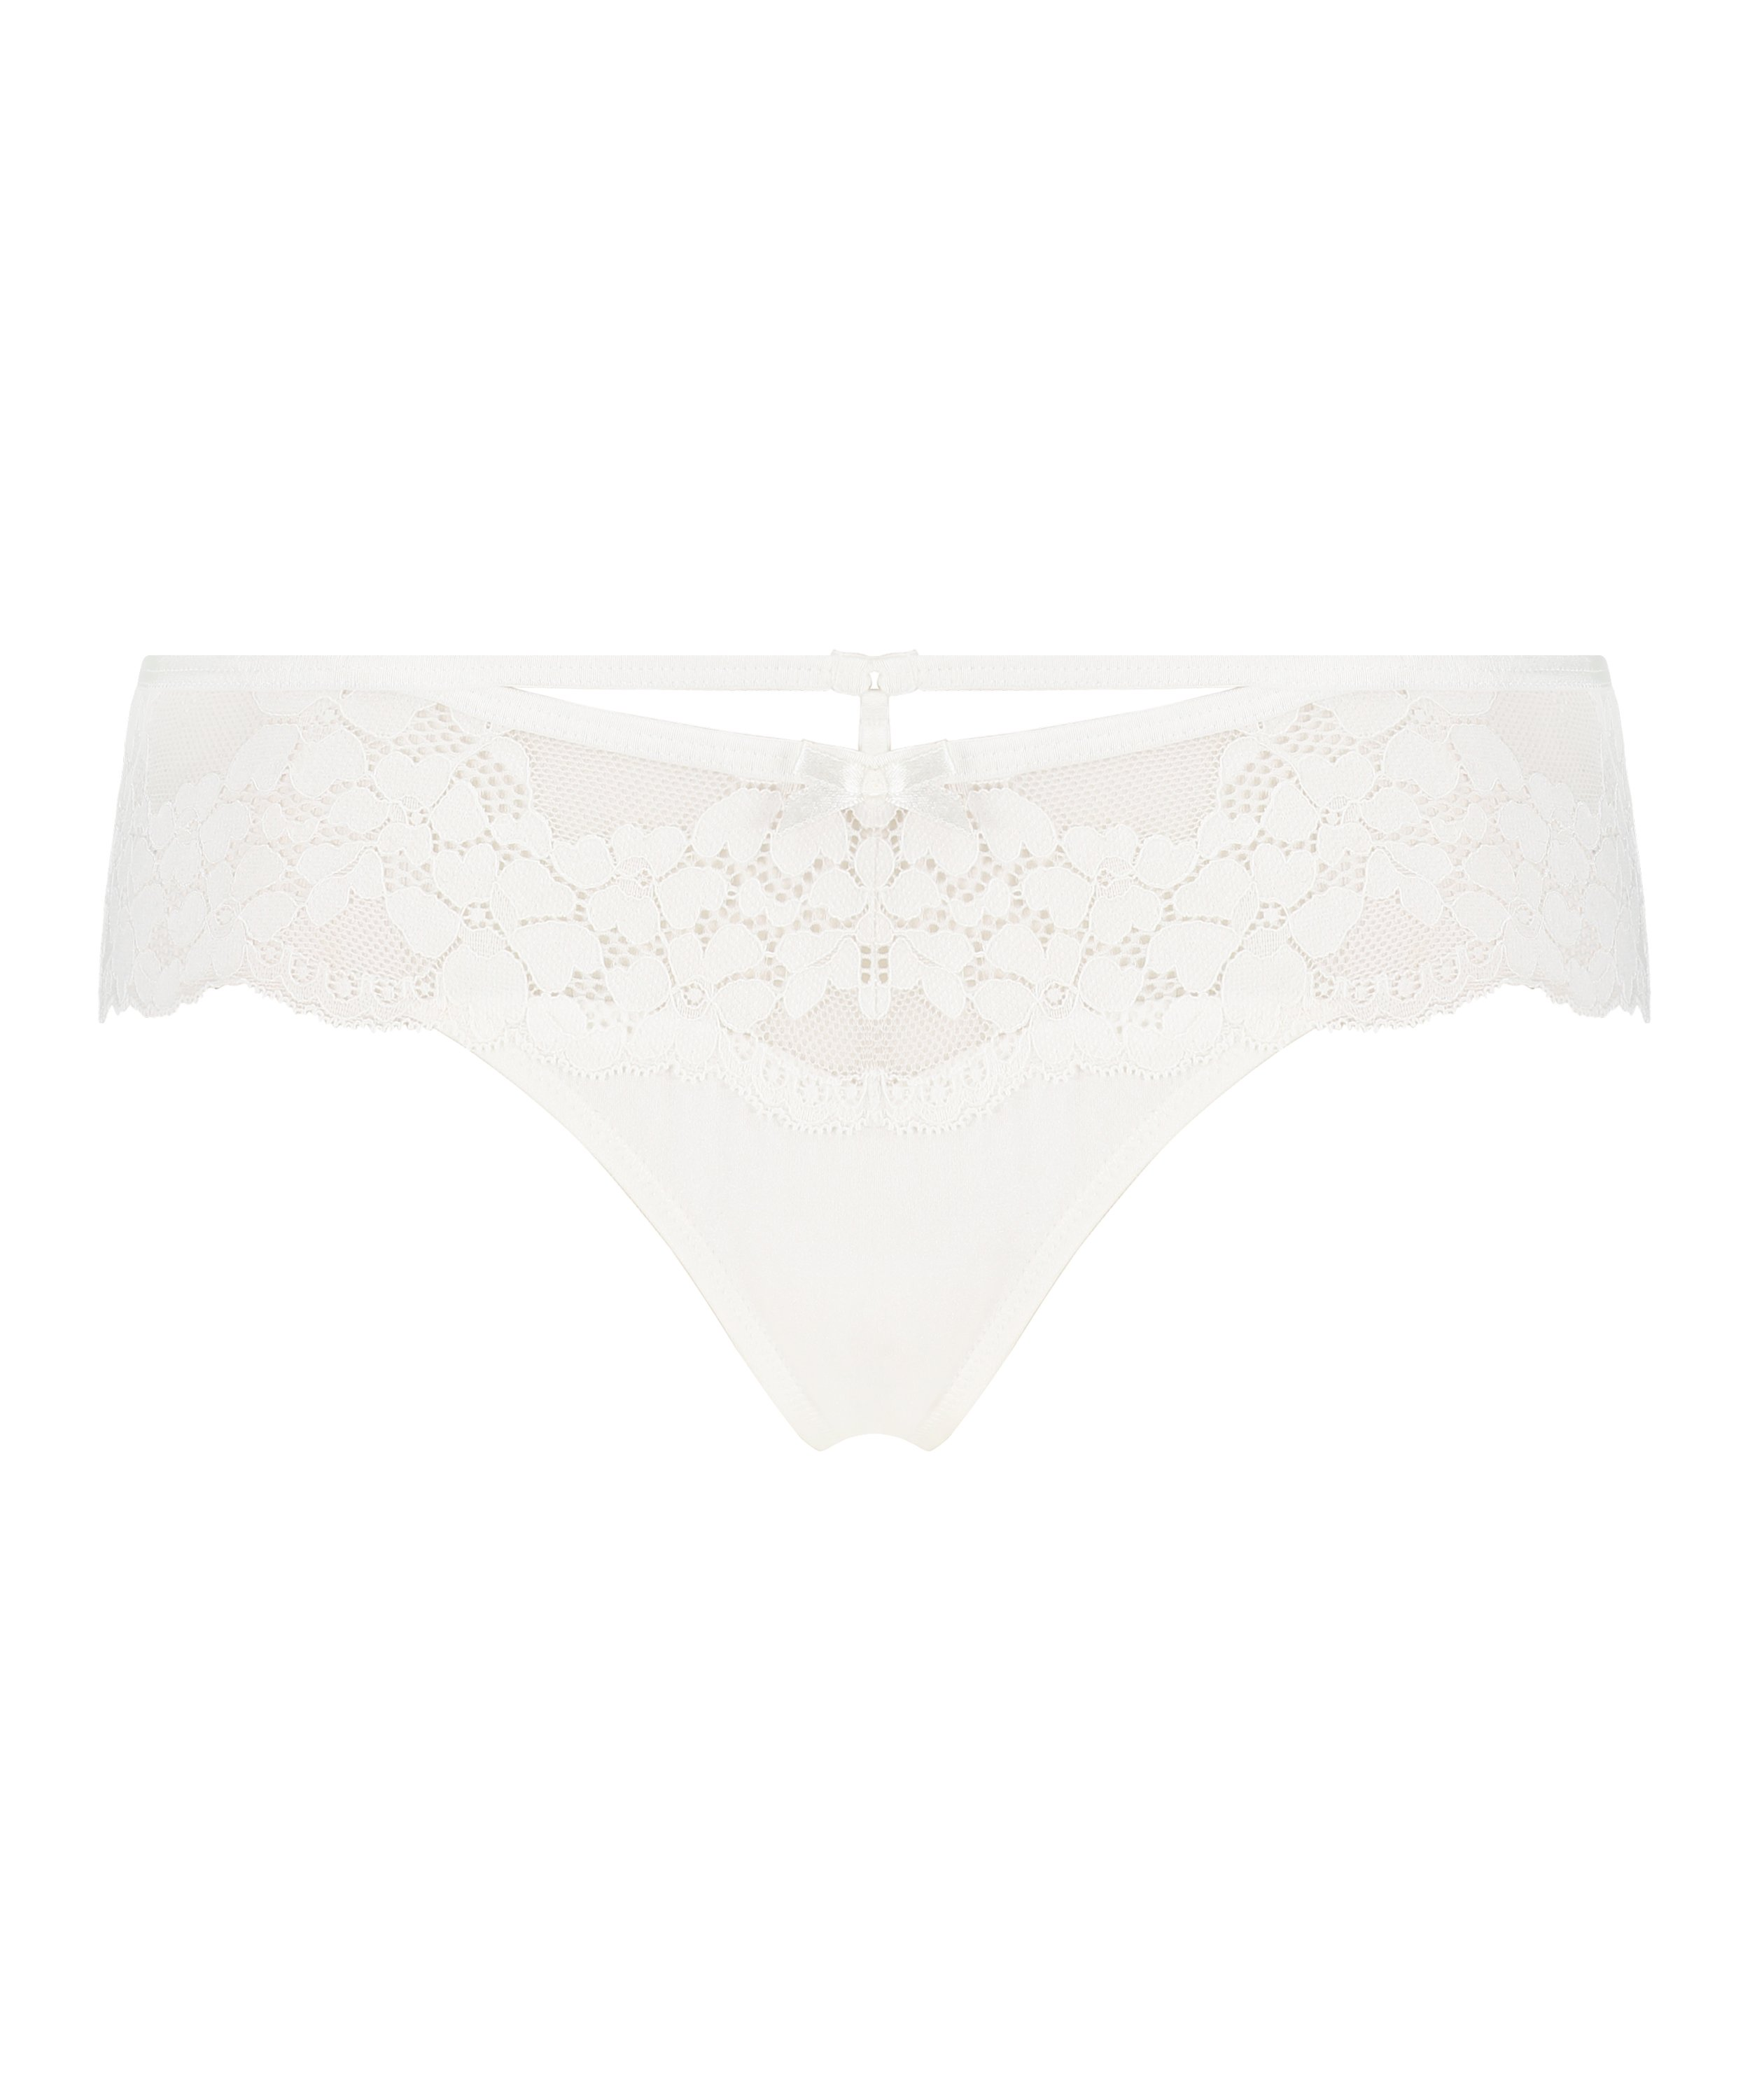 Boxerstring Nellie, Wit, main